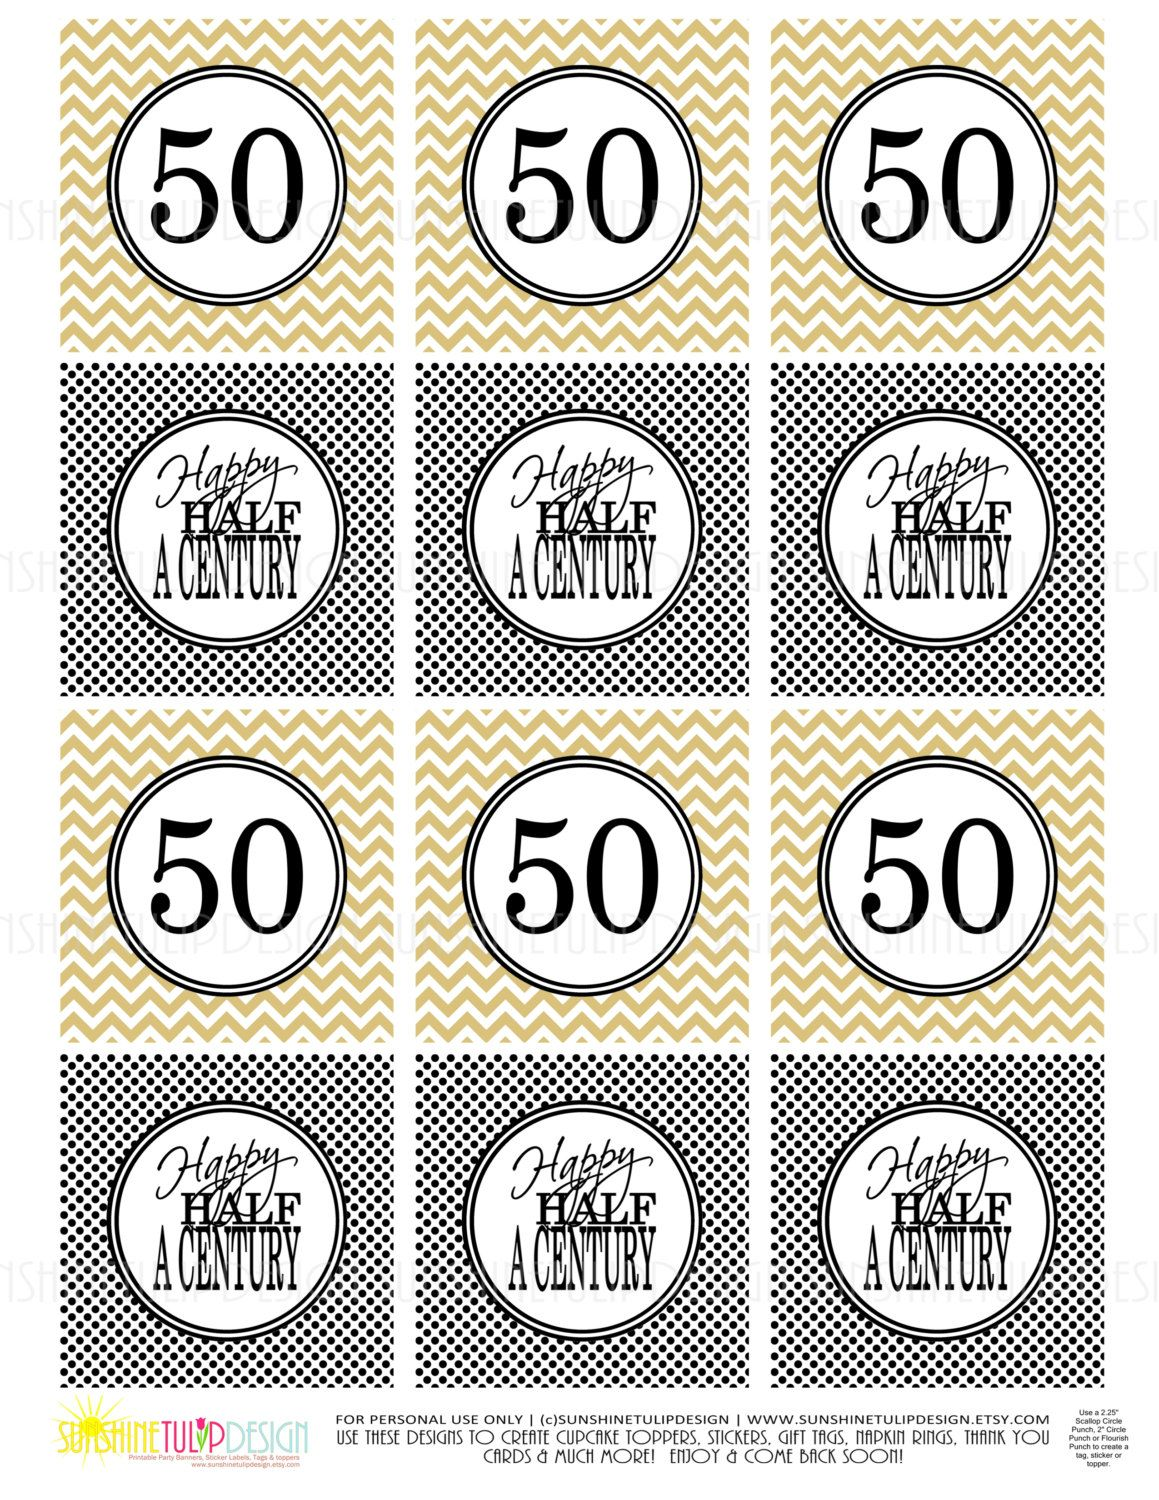 50th Birthday Half A Century Printable Gift Tags Cupcake Toppers Sticker Labels By SUNSHINETULIPDESIGN Sunshinetulipdesign On Etsy